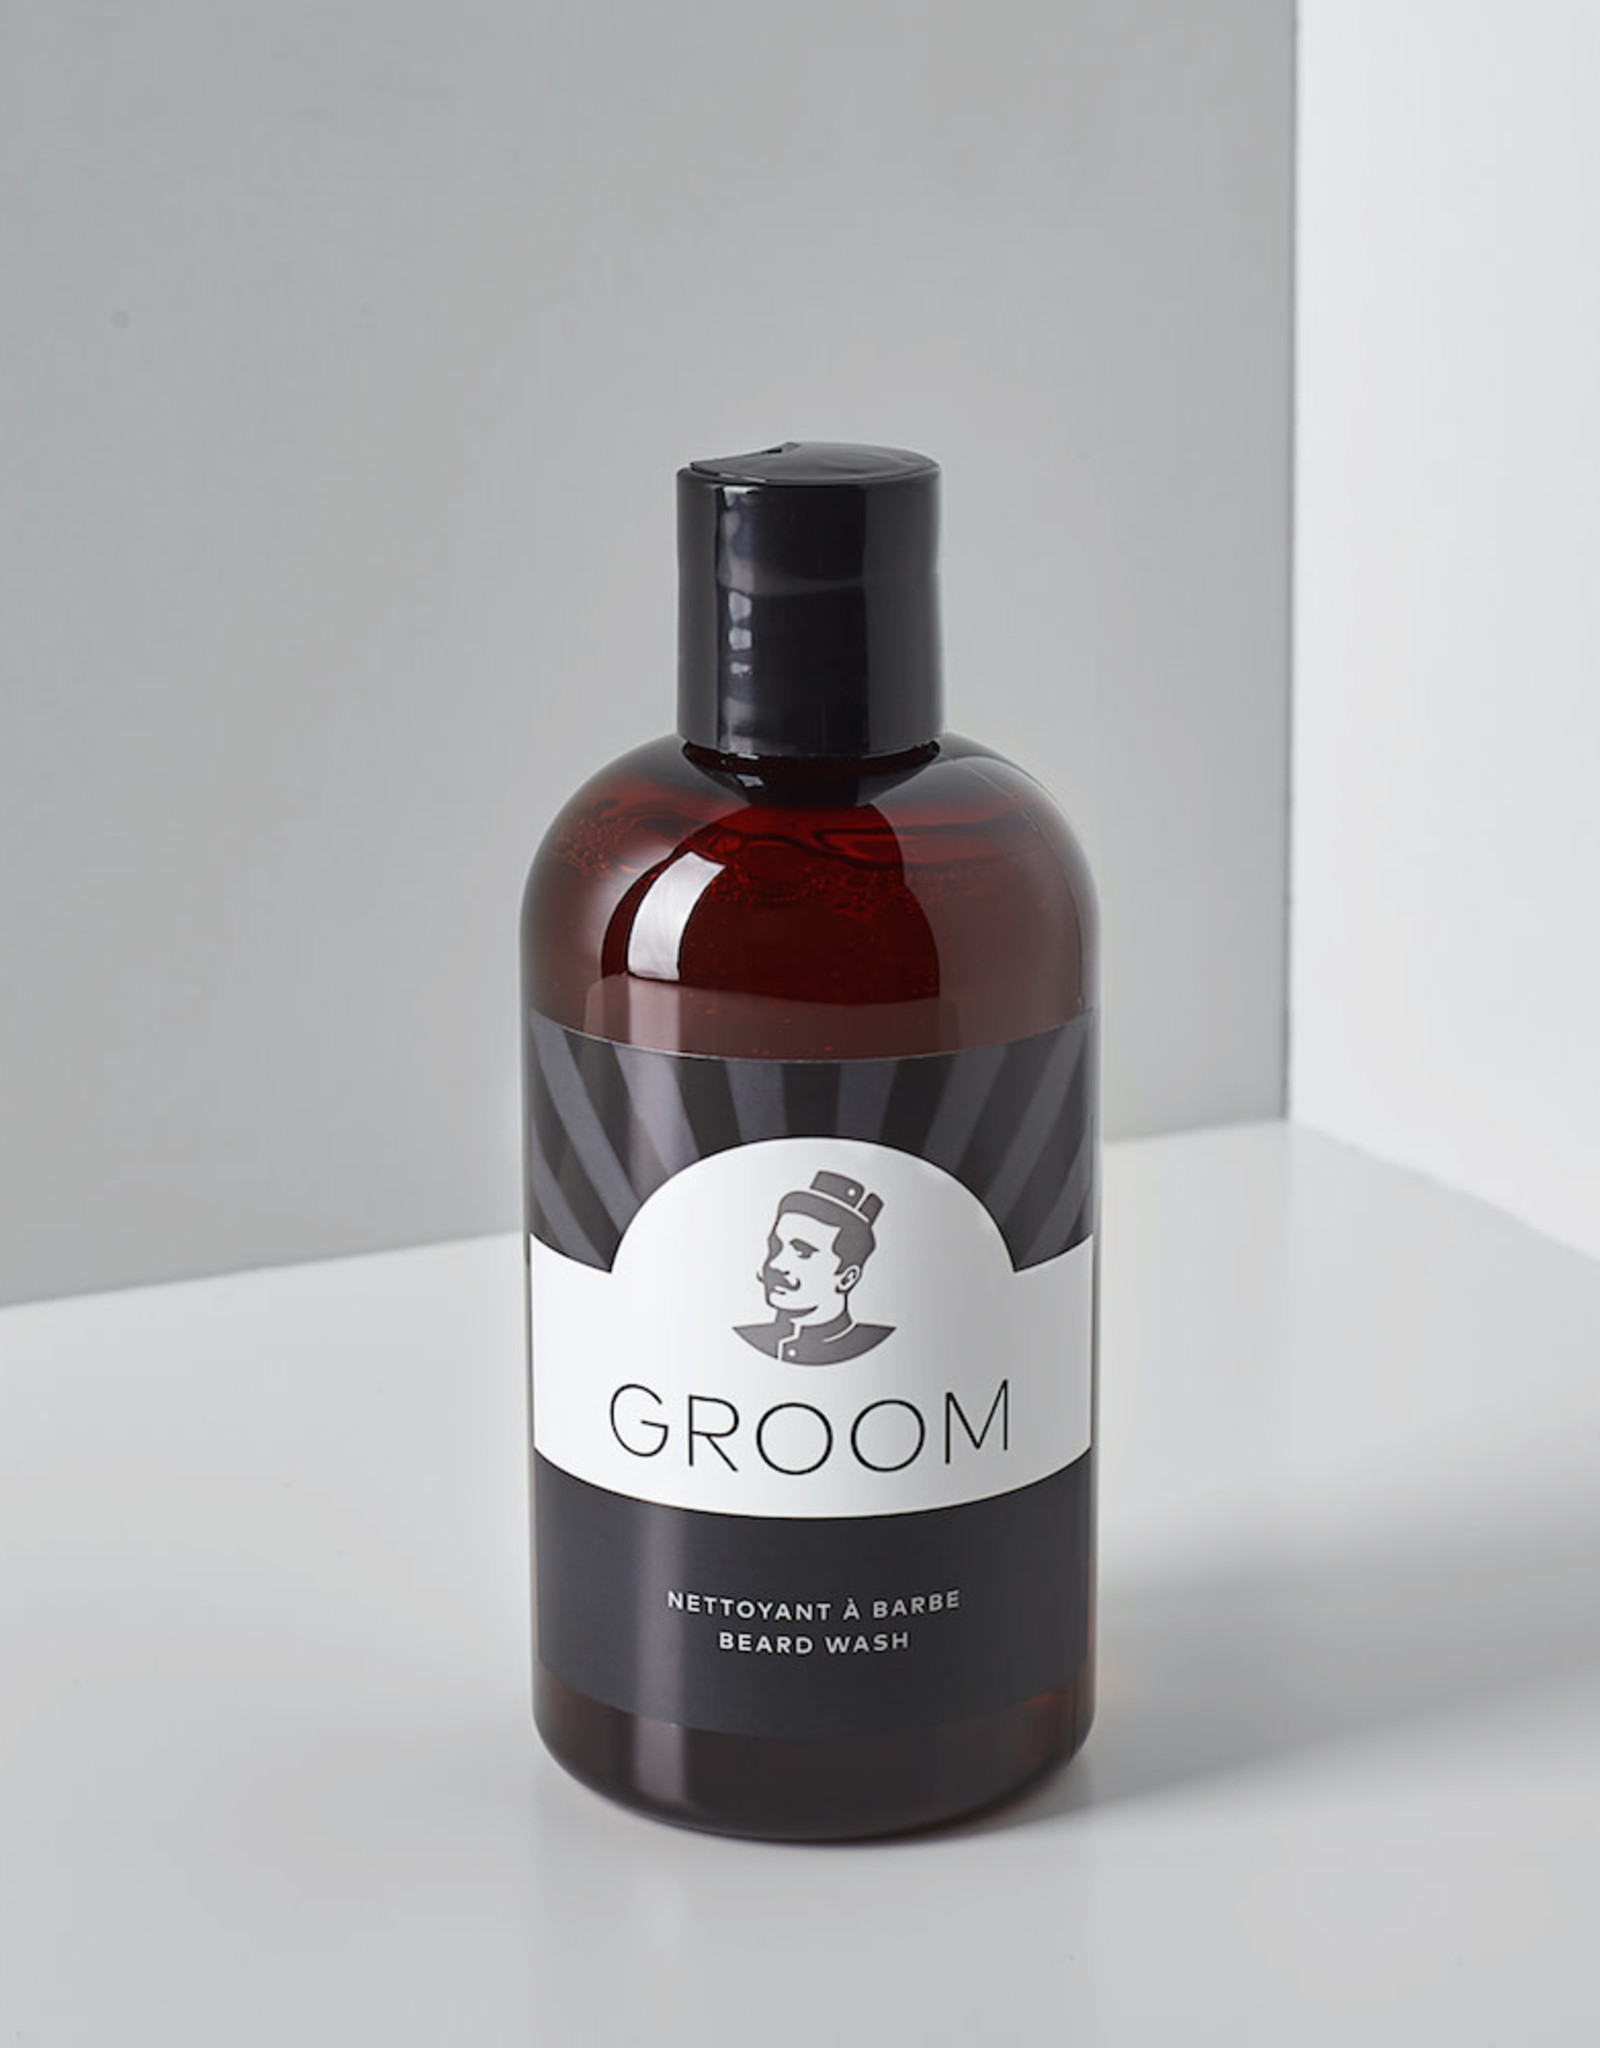 Groom Nettoyant à barbe